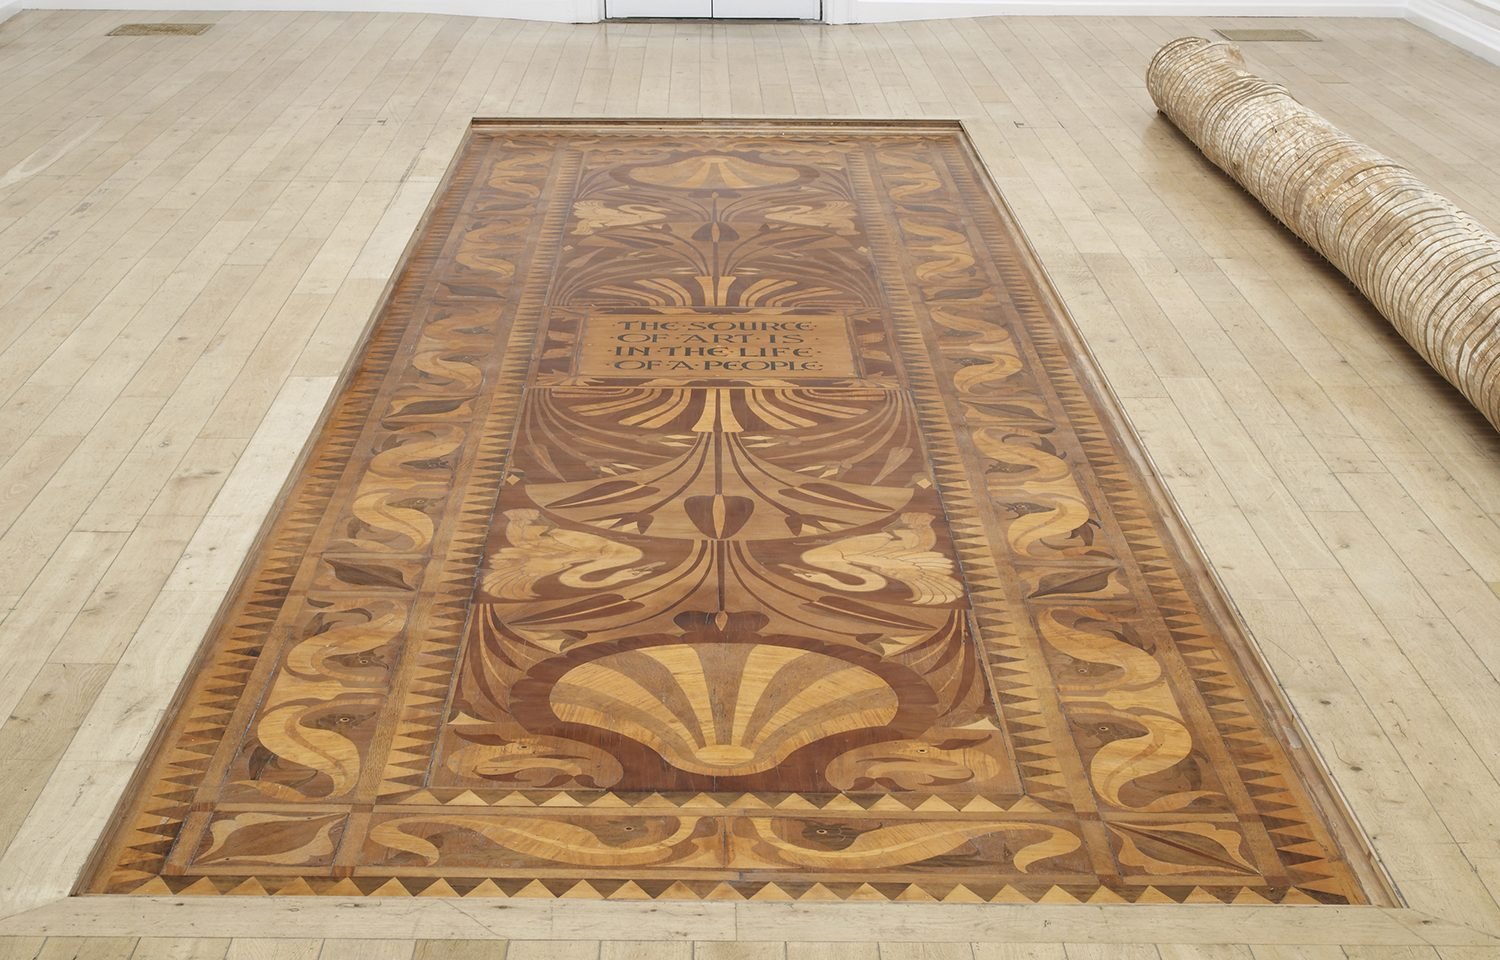 The Source of Art is in the Life of a People: Walter Crane's floor design